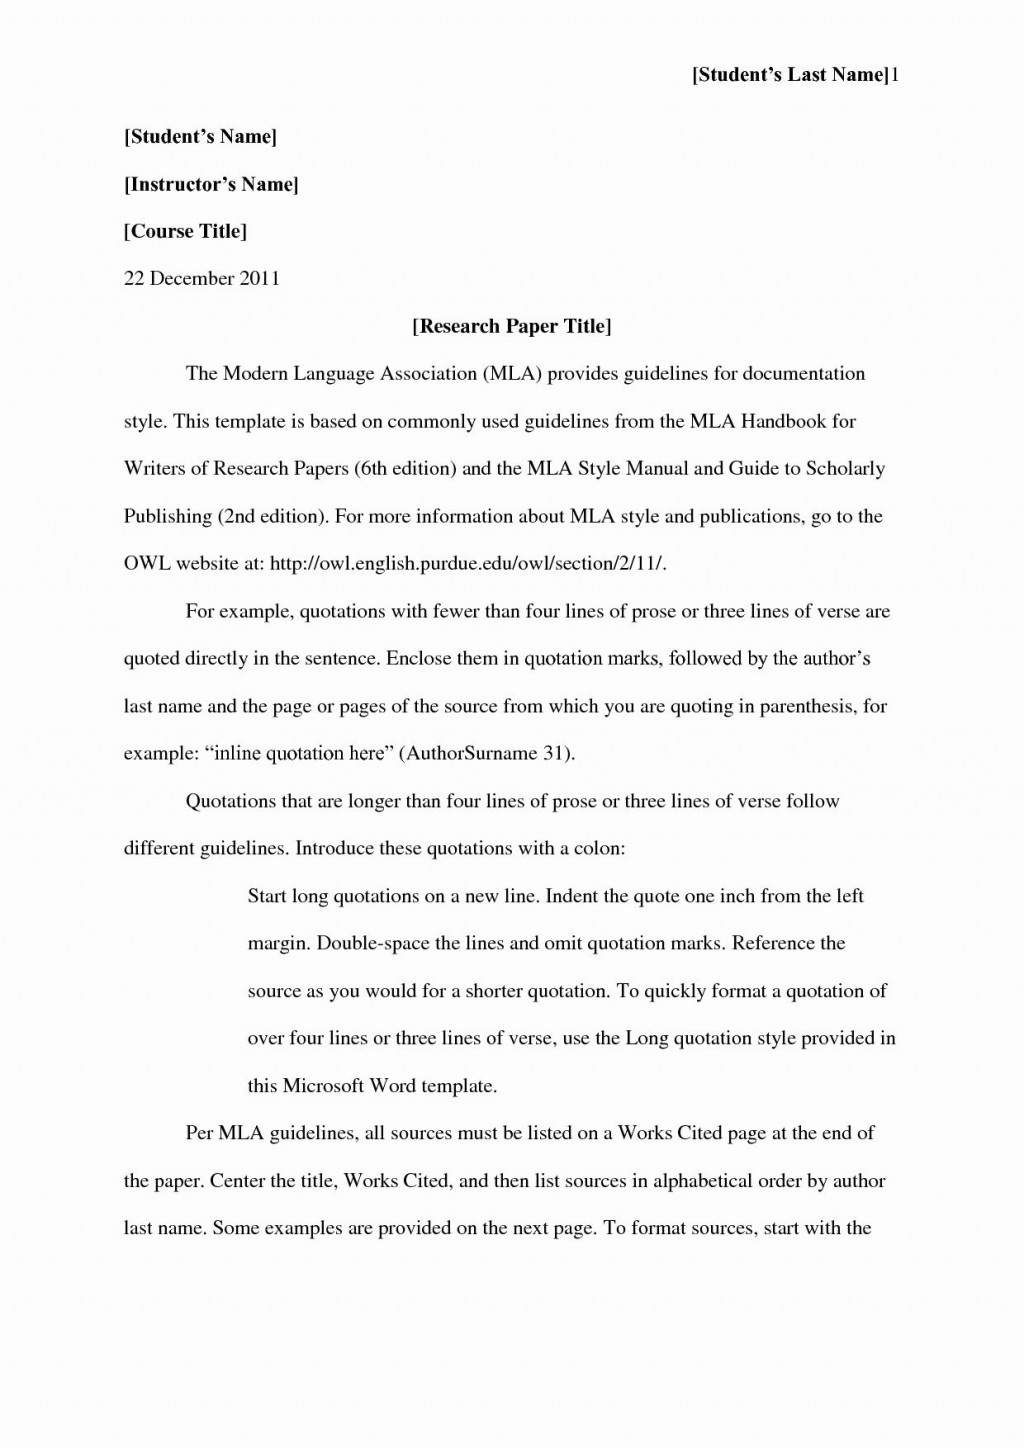 012 Mla Title Page Template Awesome Format Works Cited Scarlet Letter Best Of Apa Style Essay Research Impressive Purdue Owl Sample Reference Example Large